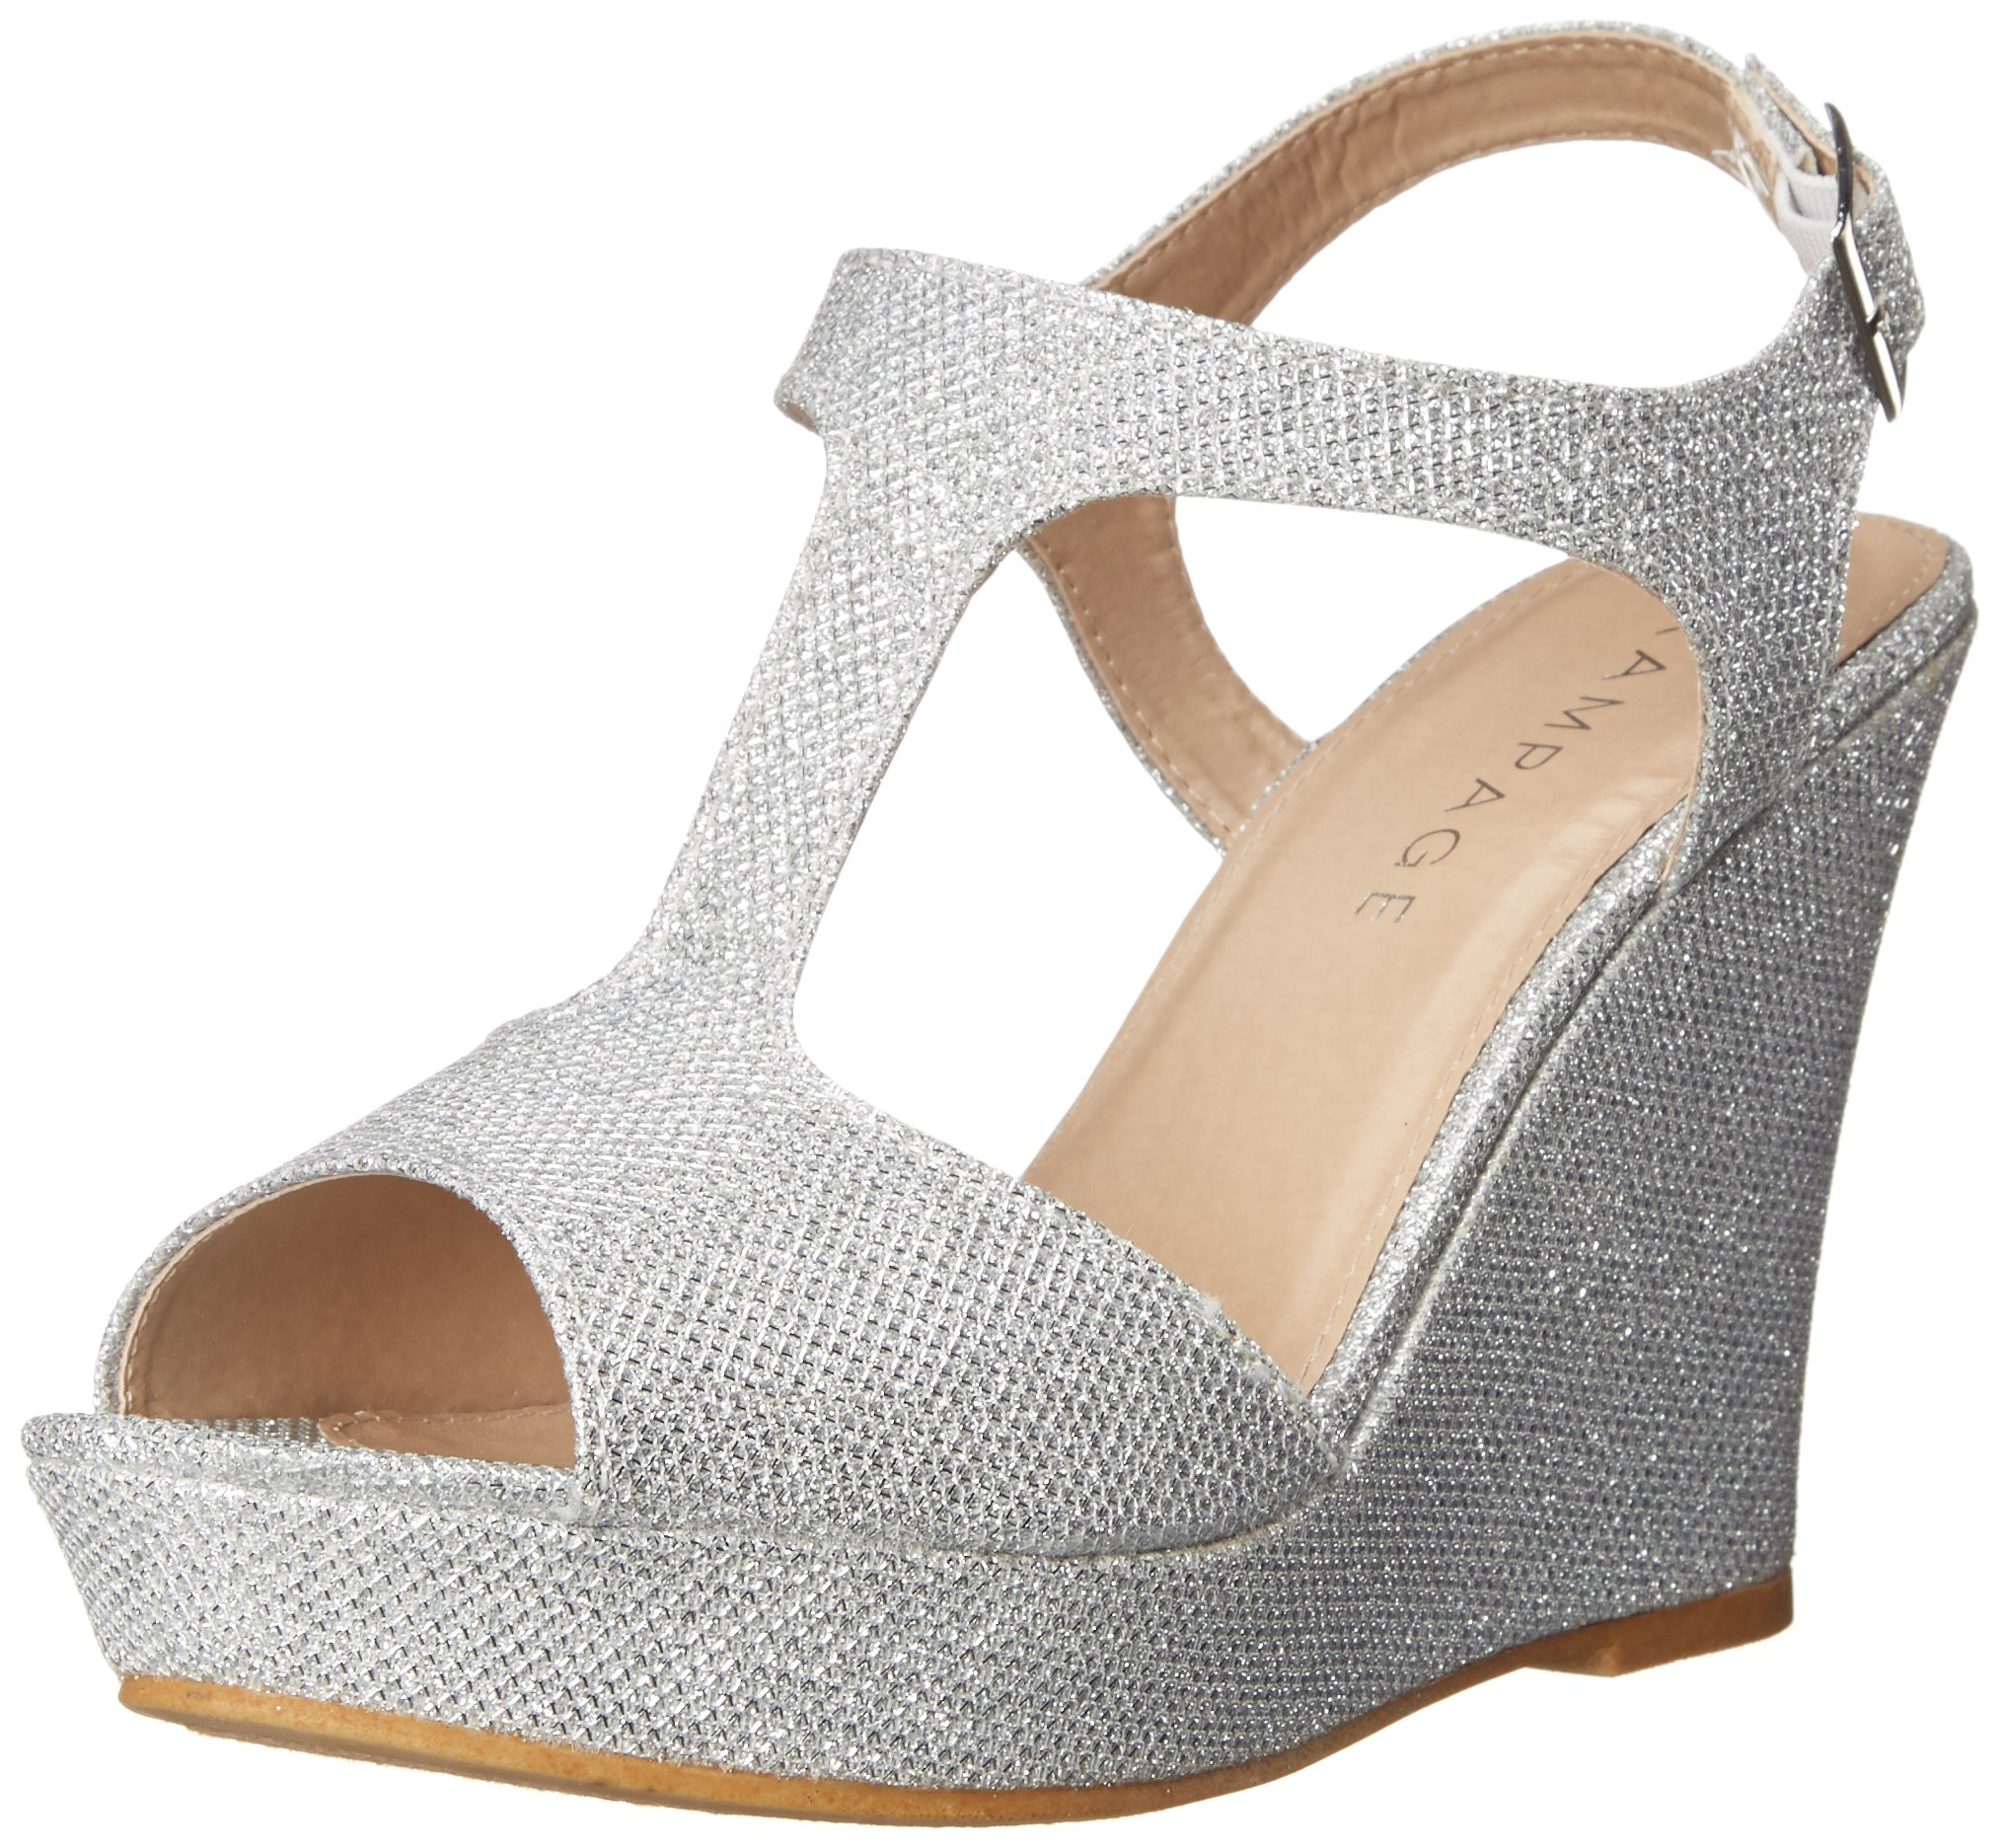 Rampage Women's Candelas Platform Ankle Strap Dress Wedge Sandal, Silver, 9 M US